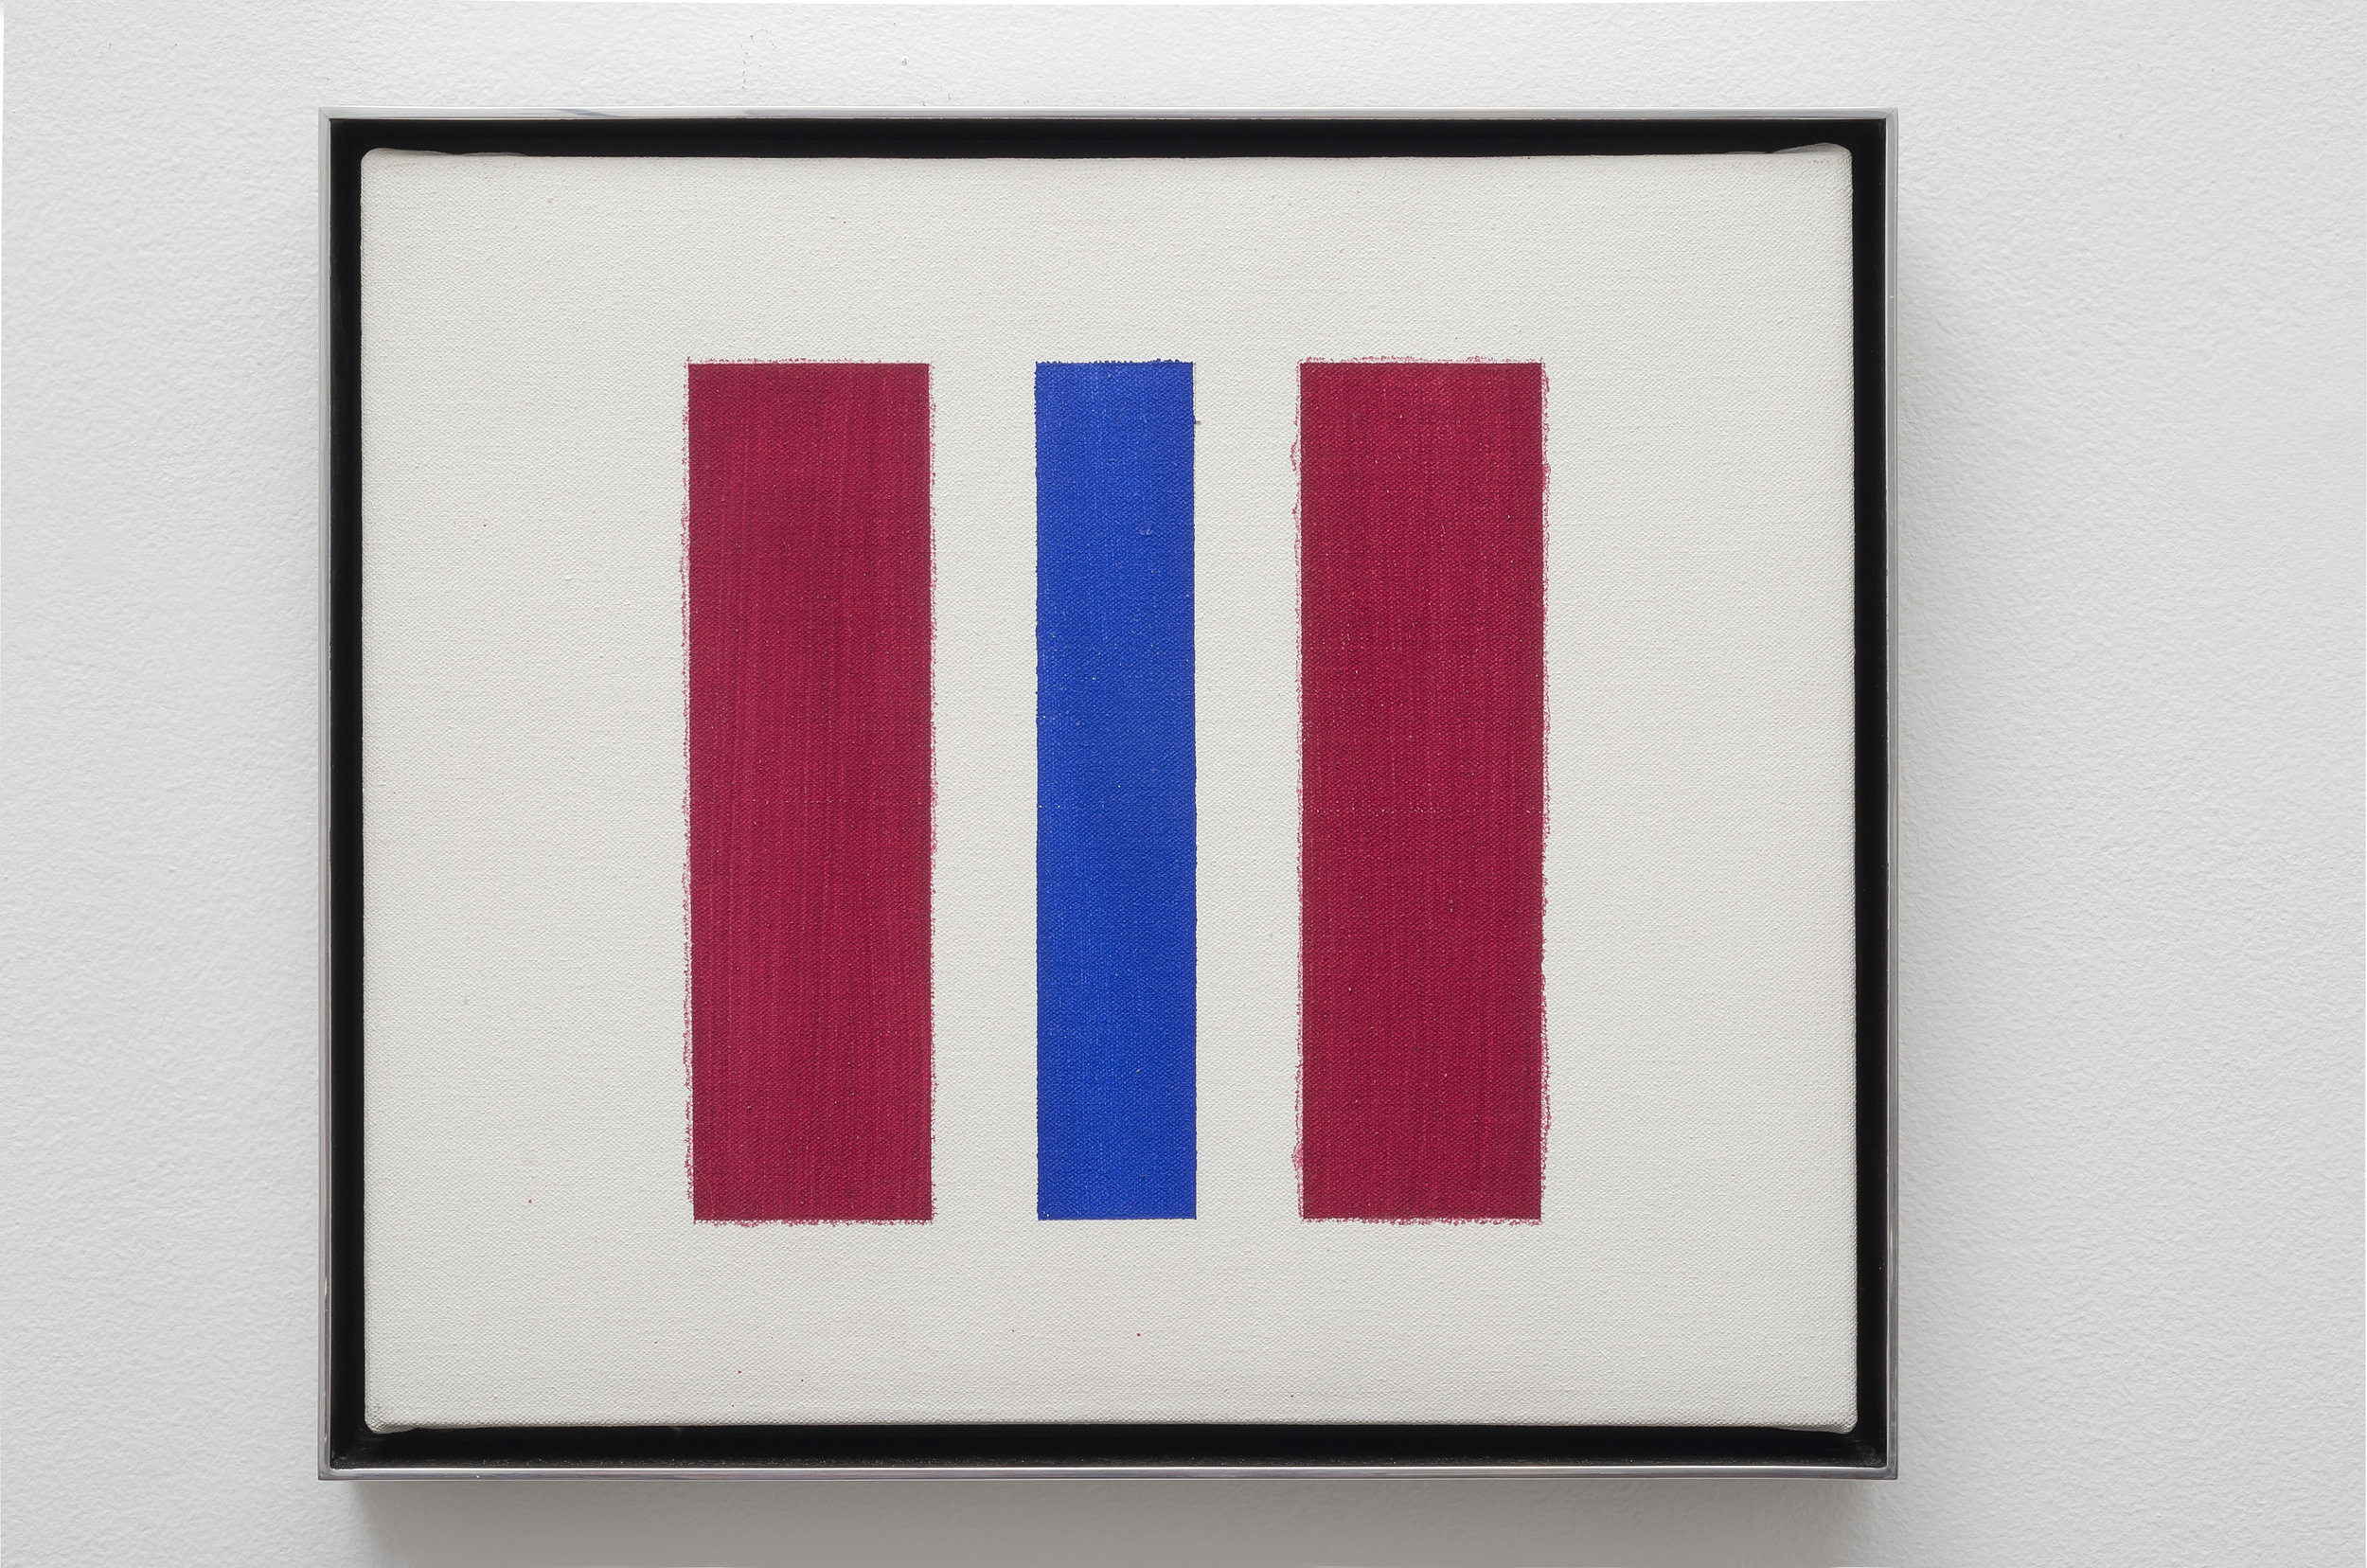 Untitled Abstract Composition (P64-021), 1964  acrylic on canvas 11 3/4 x 14 inches; 29.8 x 35.6 centimeters